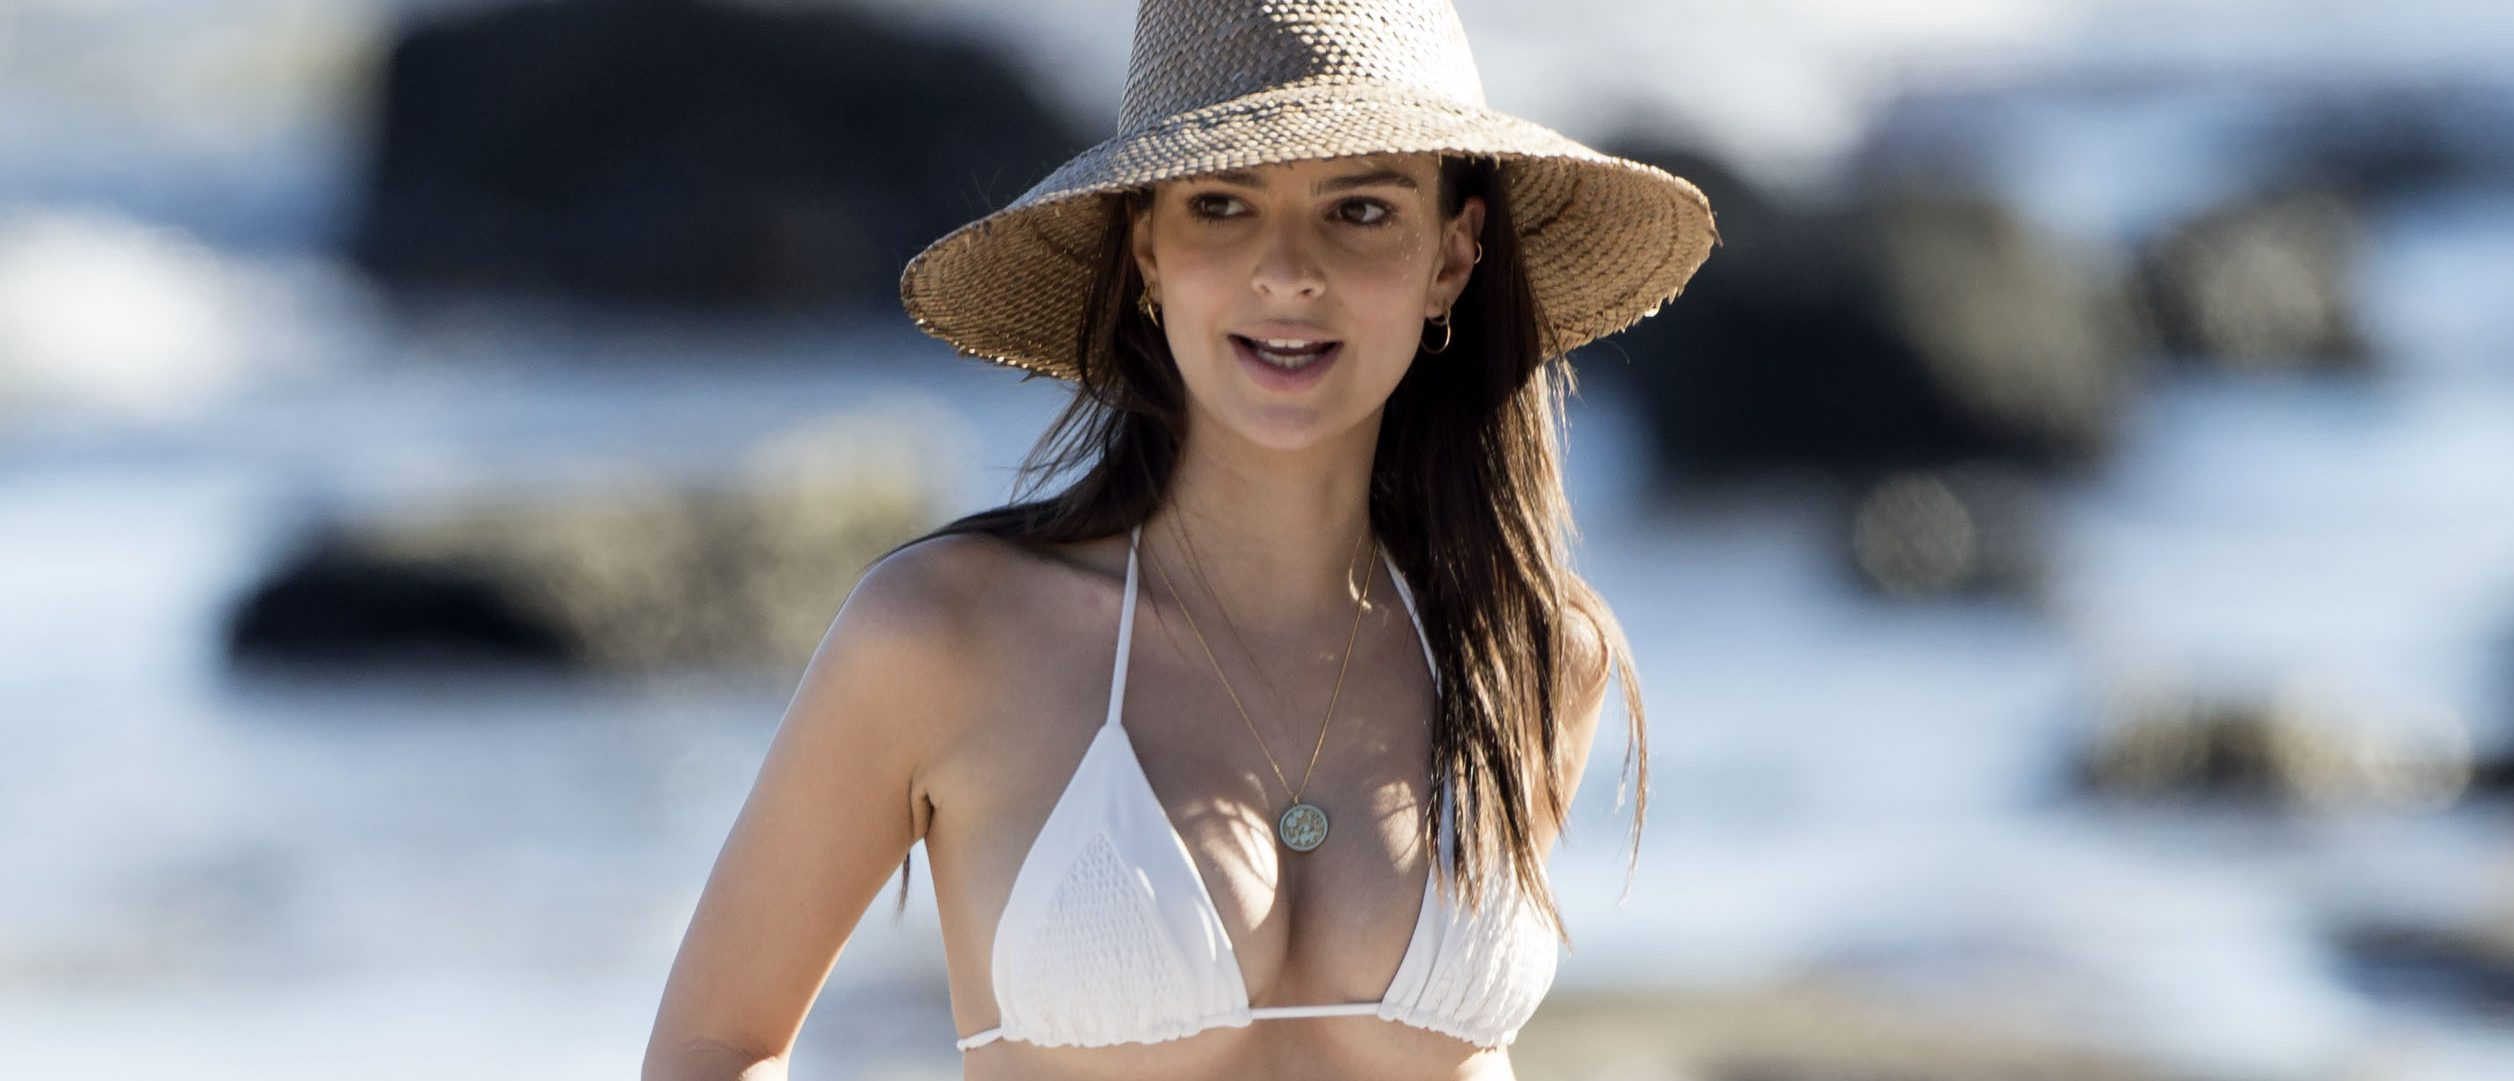 Emily Ratajkowski sun bathes at Paradise Cove in Malibu, Calif. (Photo: Splash News)